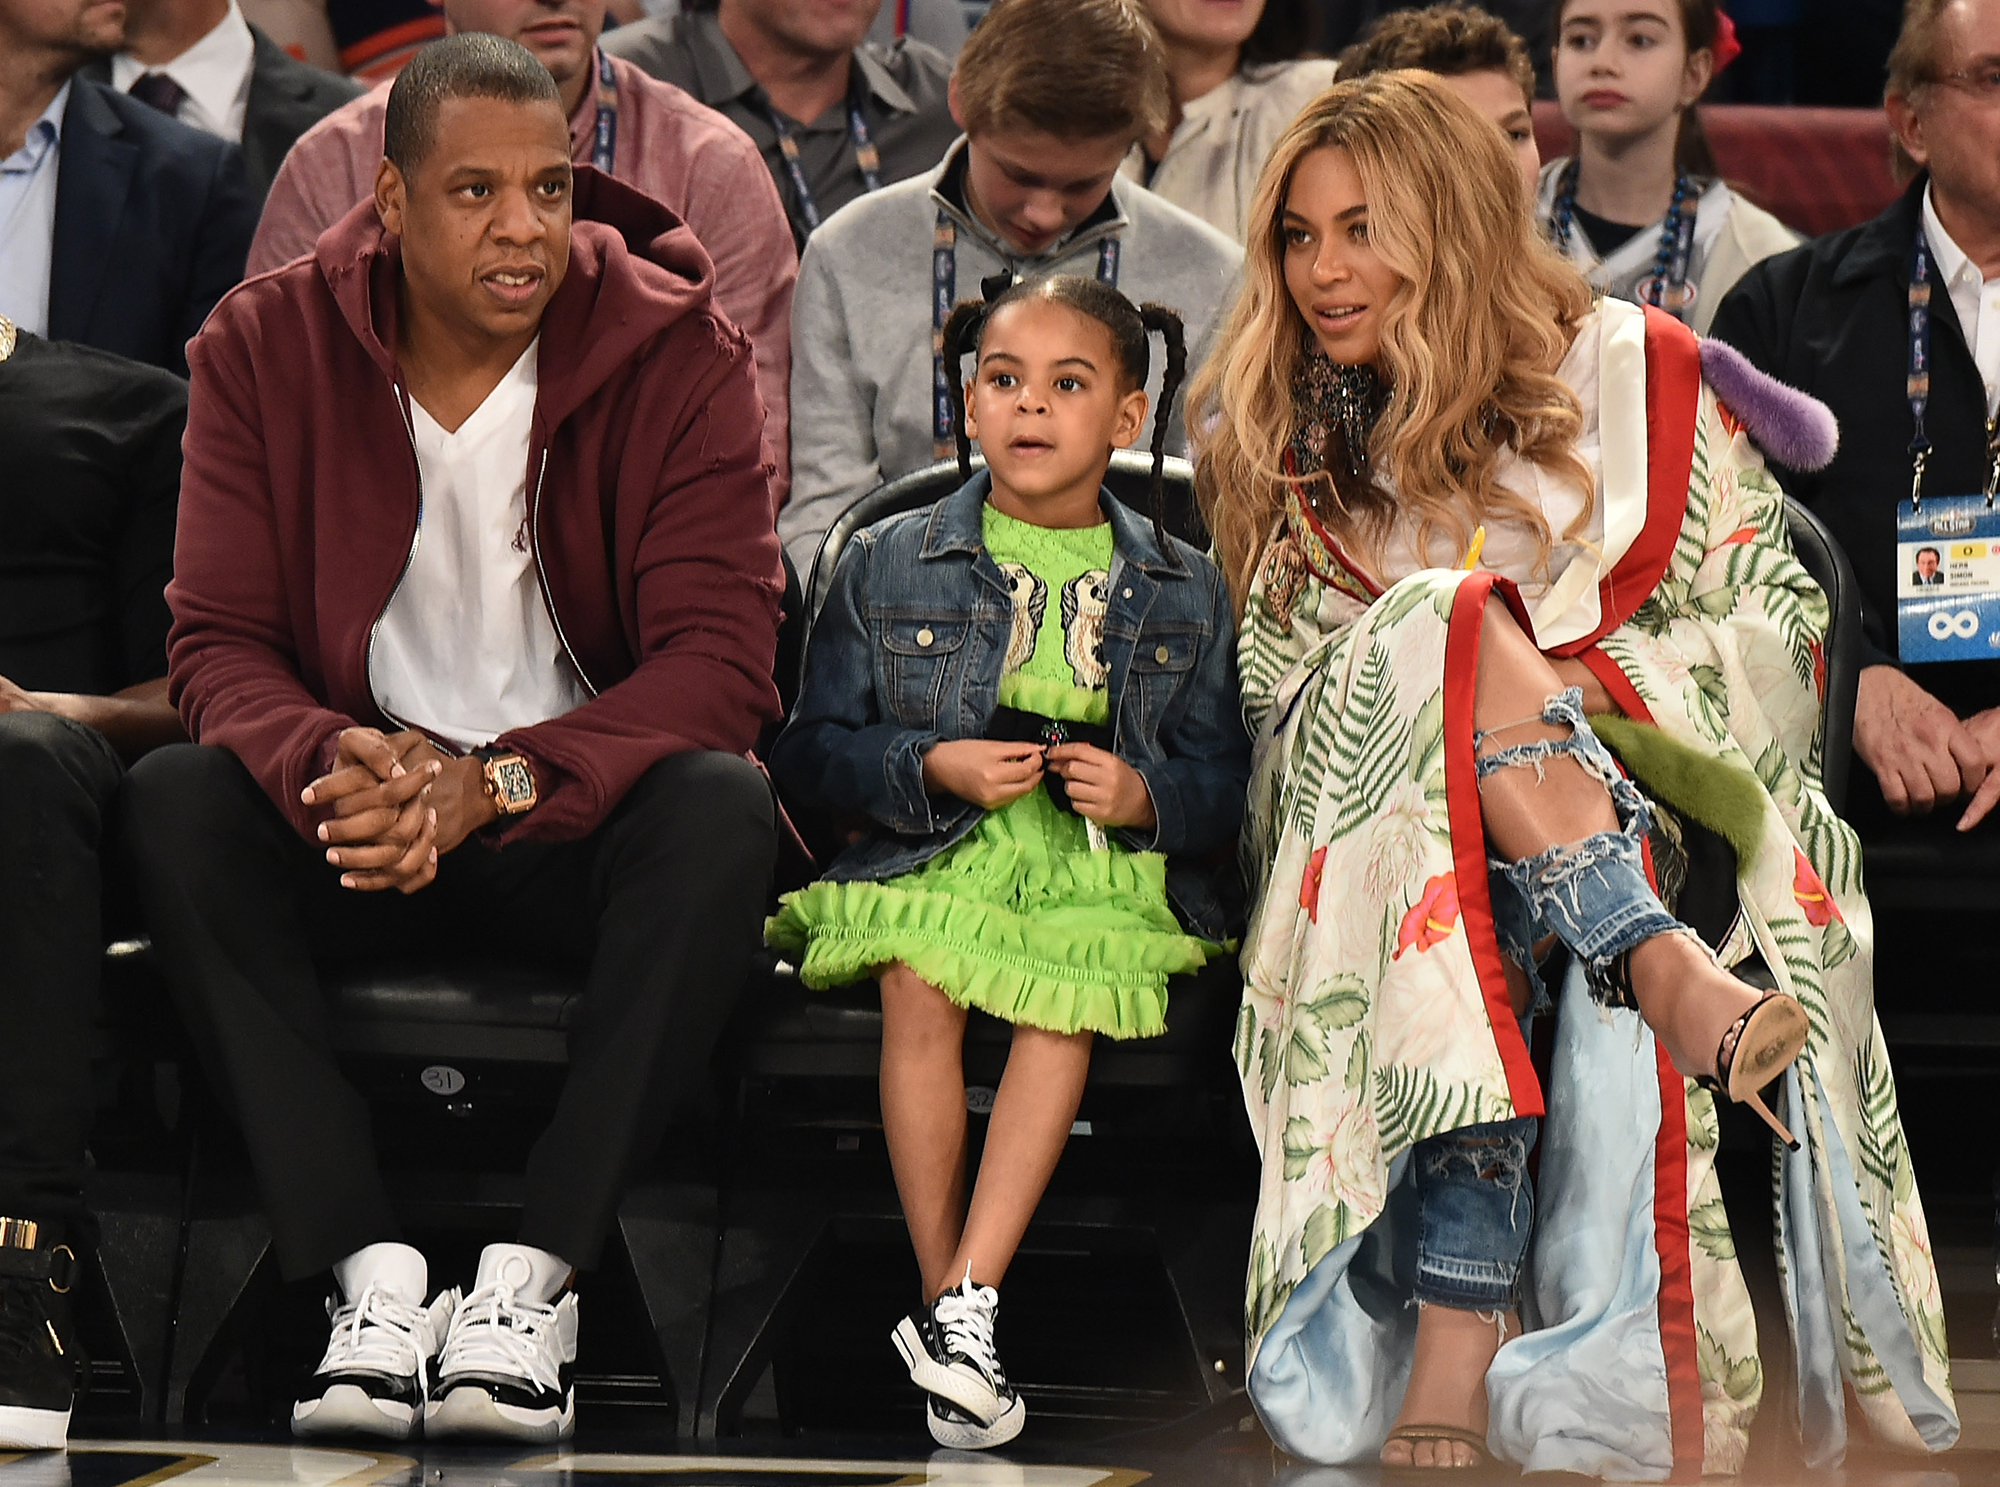 Beyonce Reveals the Super Strict Diet She Started Post-Twins - Jay Z, Blue Ivy Carter and Beyoncé Knowles attend the 66th NBA All-Star Game on February 19, 2017 in New Orleans, Louisiana.